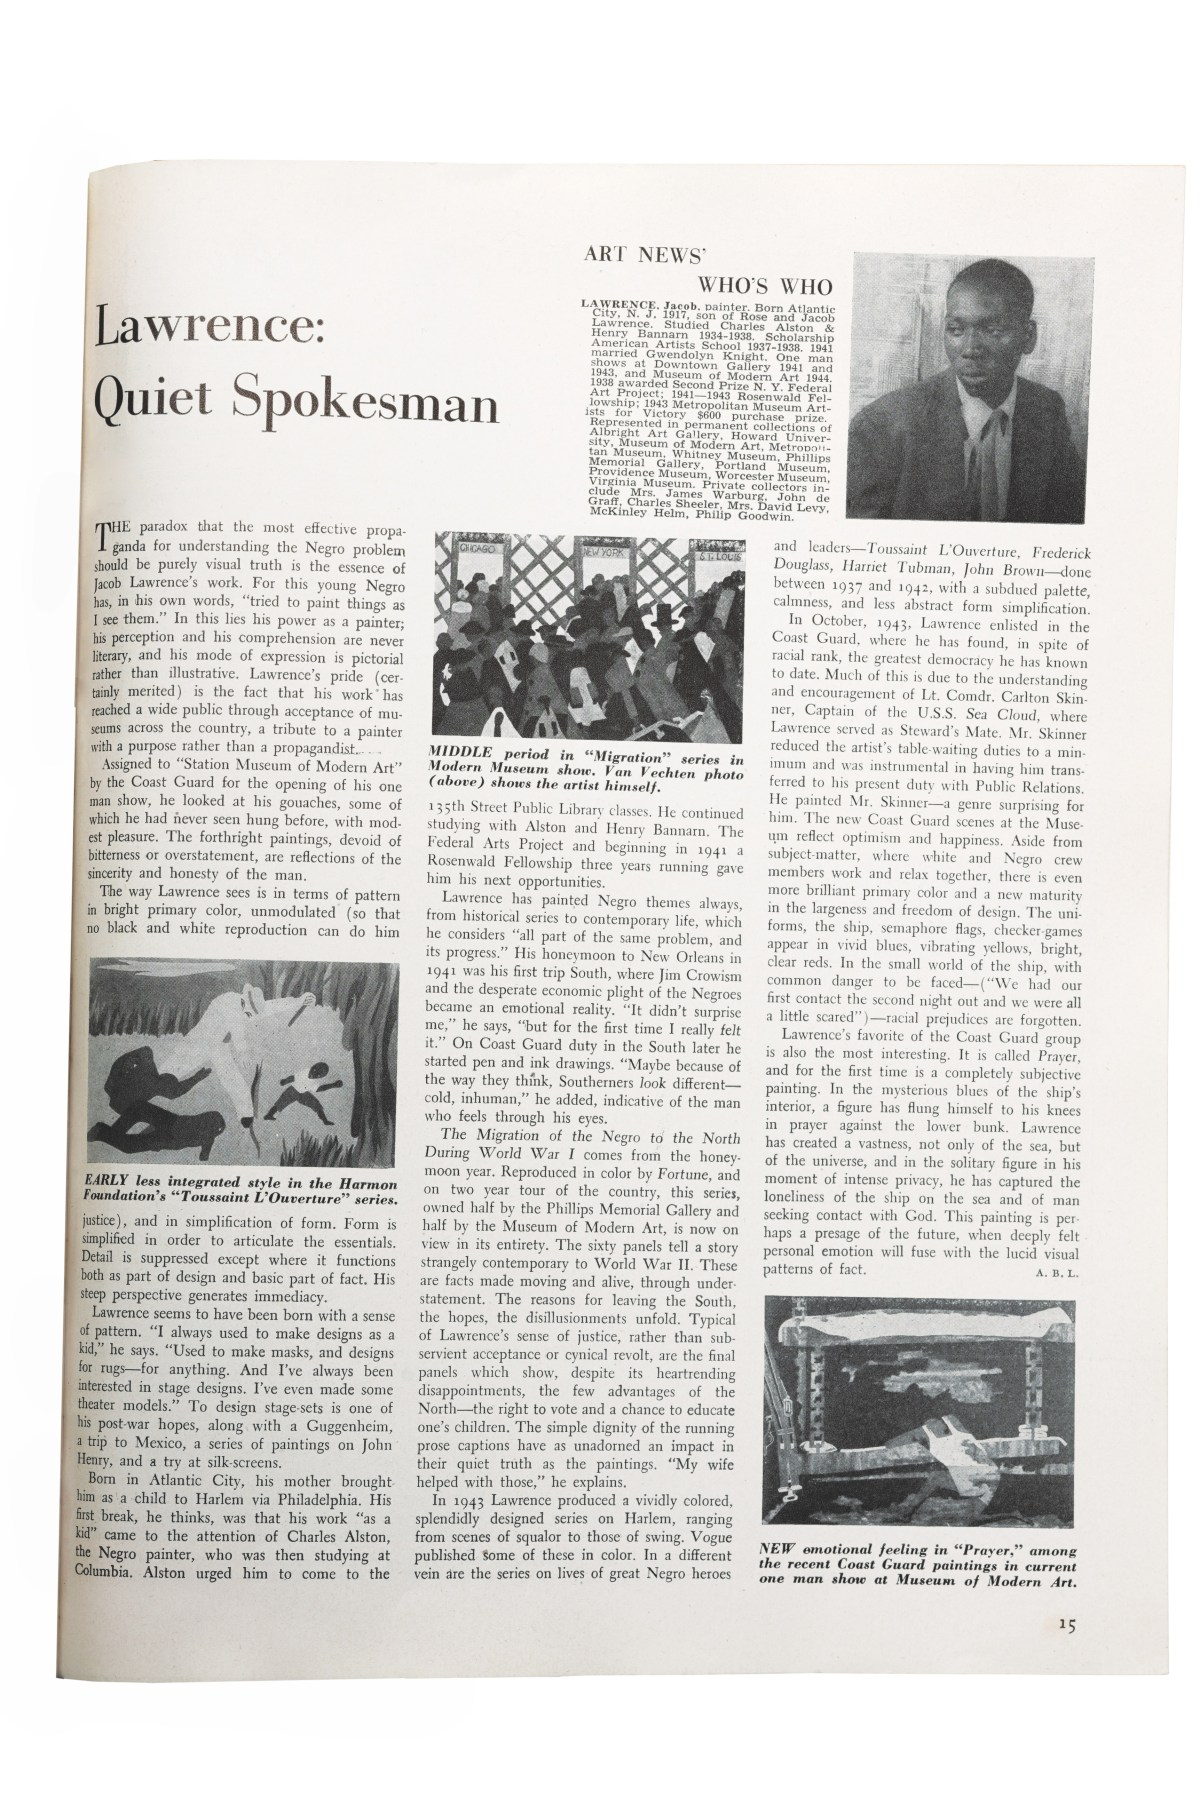 ARTnews Jacob Lawerence profile layout from